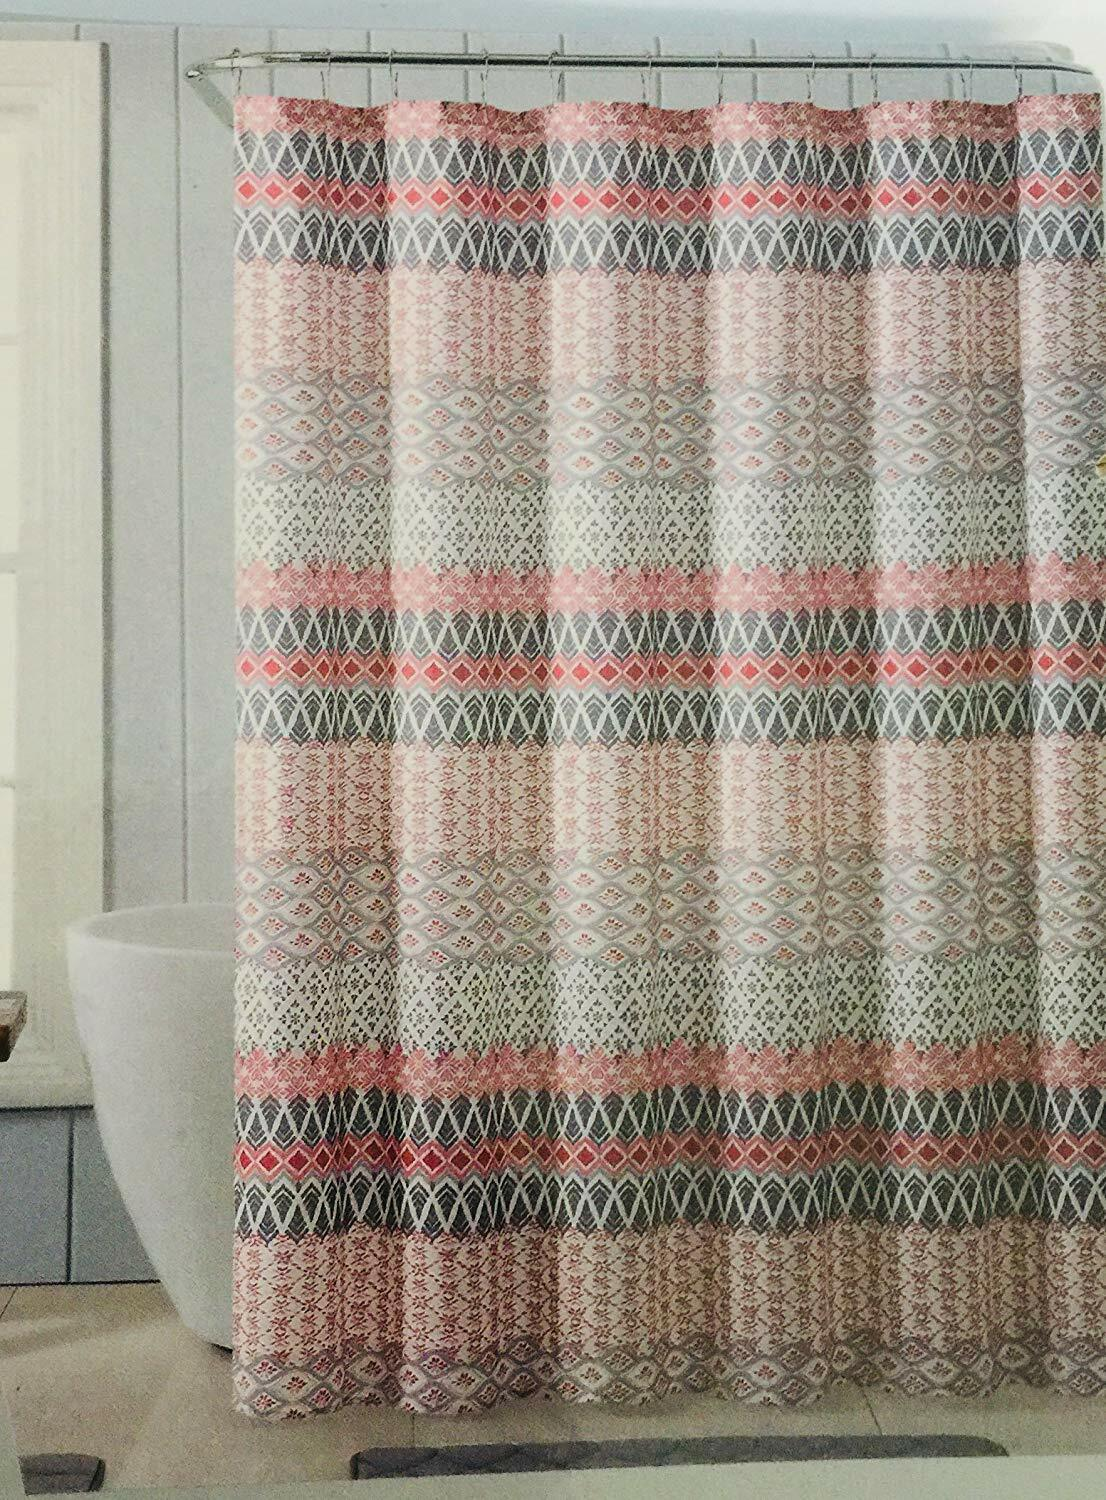 Vcny Home Black Silver Gray Geometric Fabric Shower Curtain X 72 In 72 In